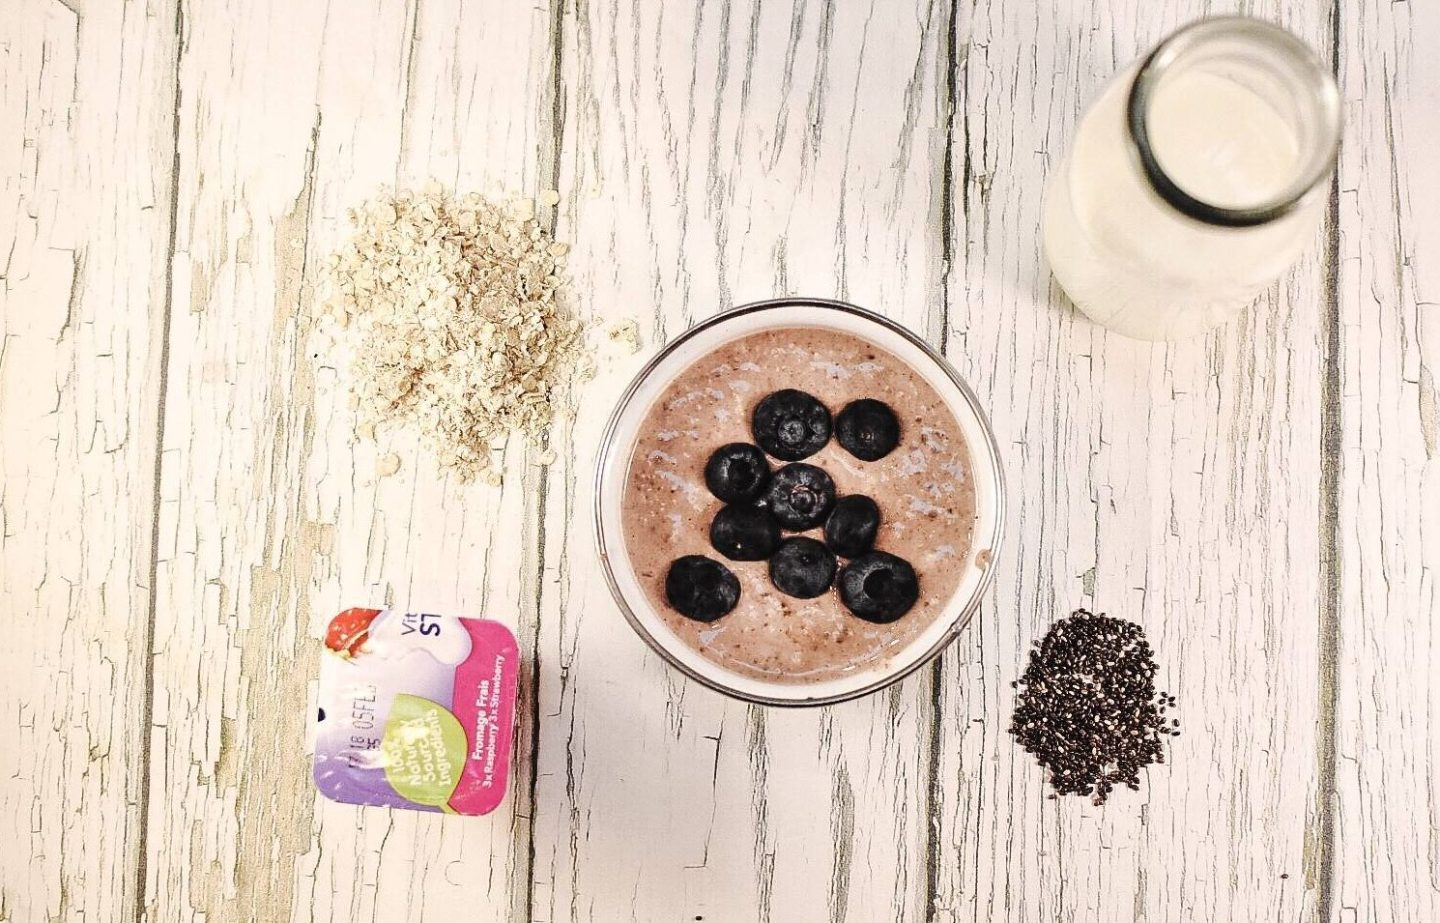 why not make these kid friendly over night oats to help with the morning rush? They super easy and a really healthy breakfast